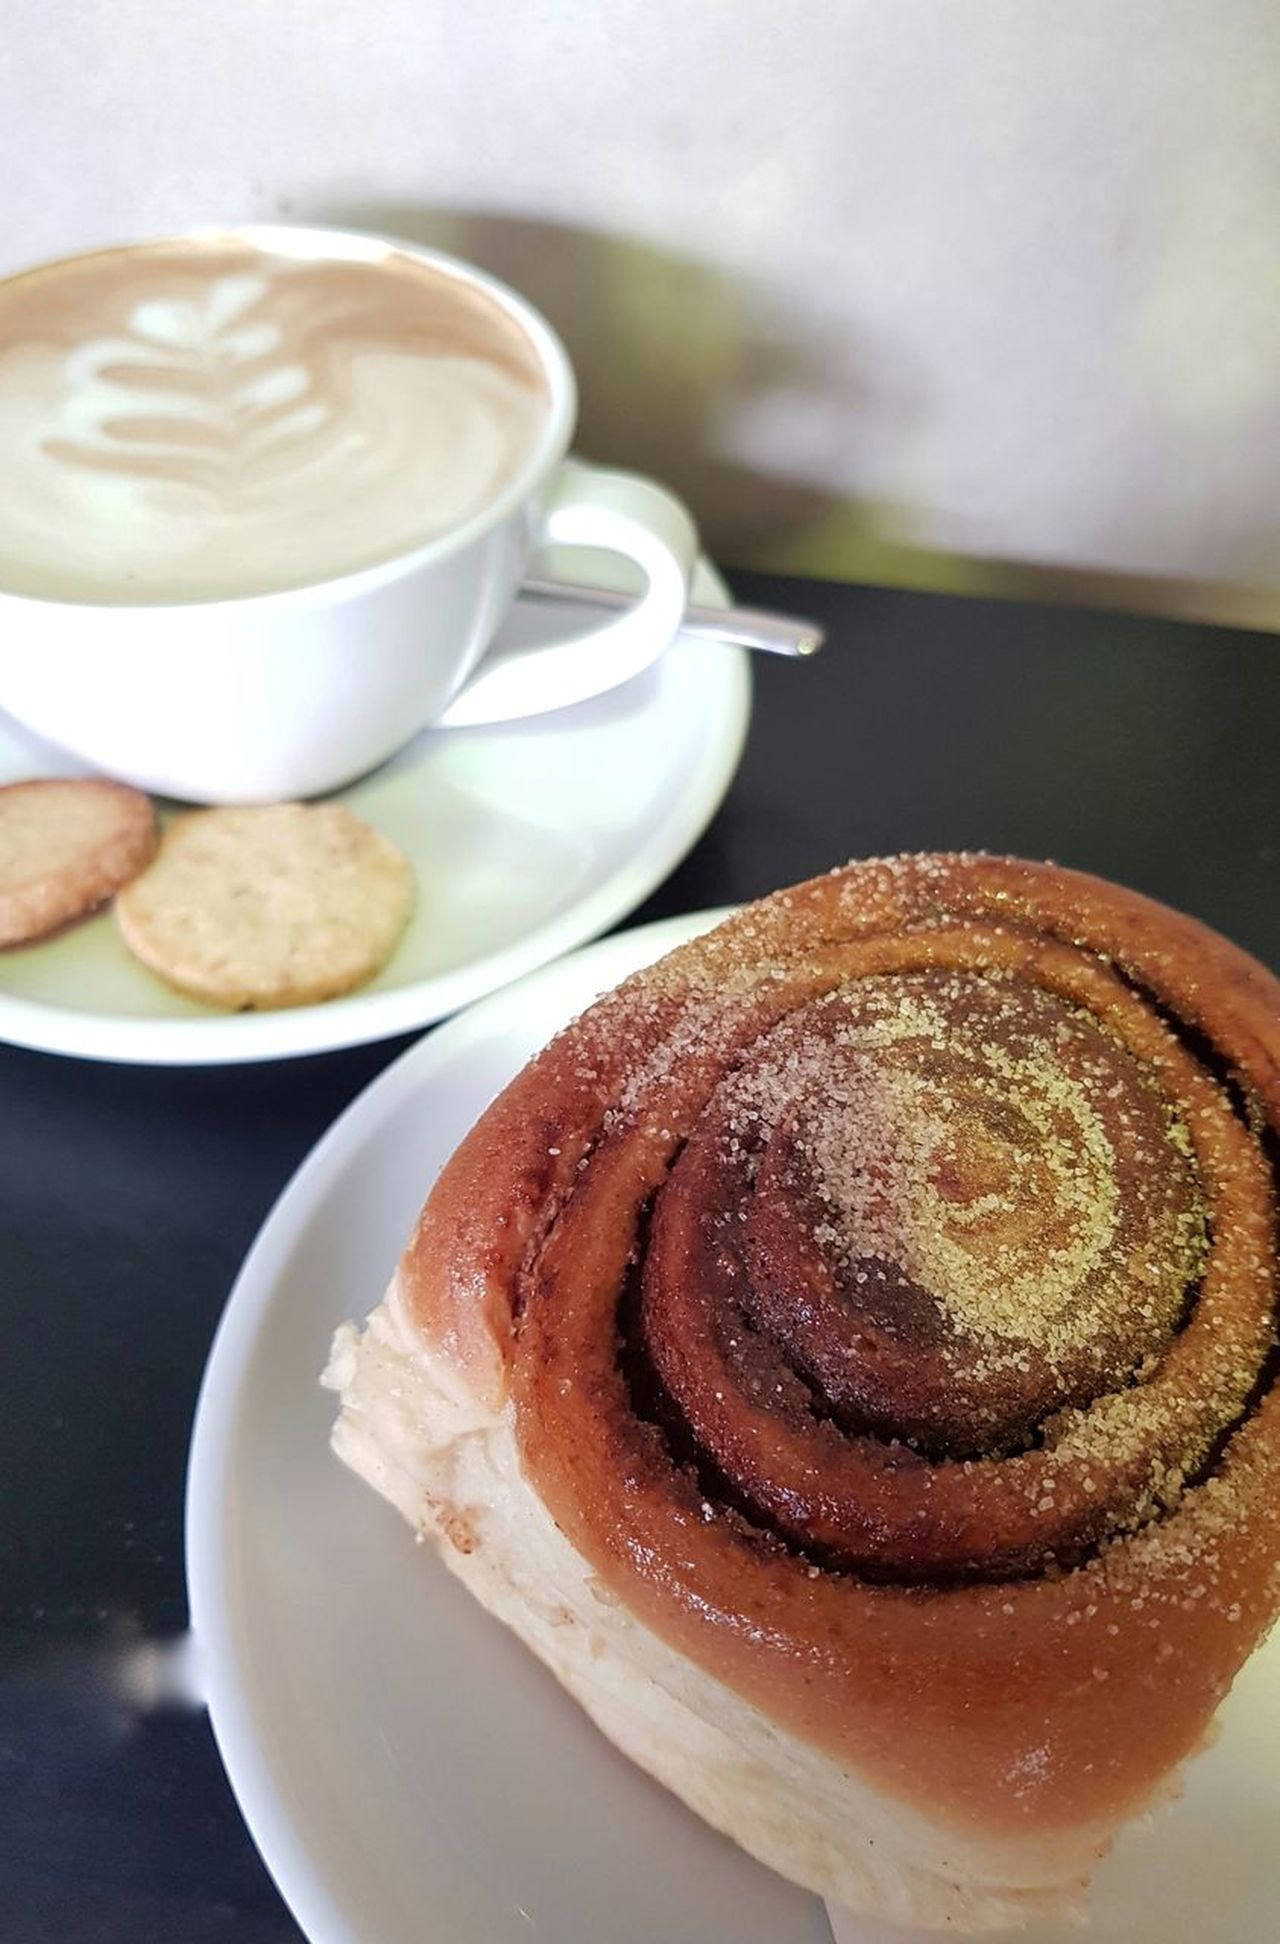 ♡ 《 At Work With Love Breakfast Coffee Cup Coffee - Drink Food And Drink Food Sweet Food Cappuccino Ready-to-eat Cinamonroll Sweet Breakfast  Coffee Time Latte Art Lover Latteart 》